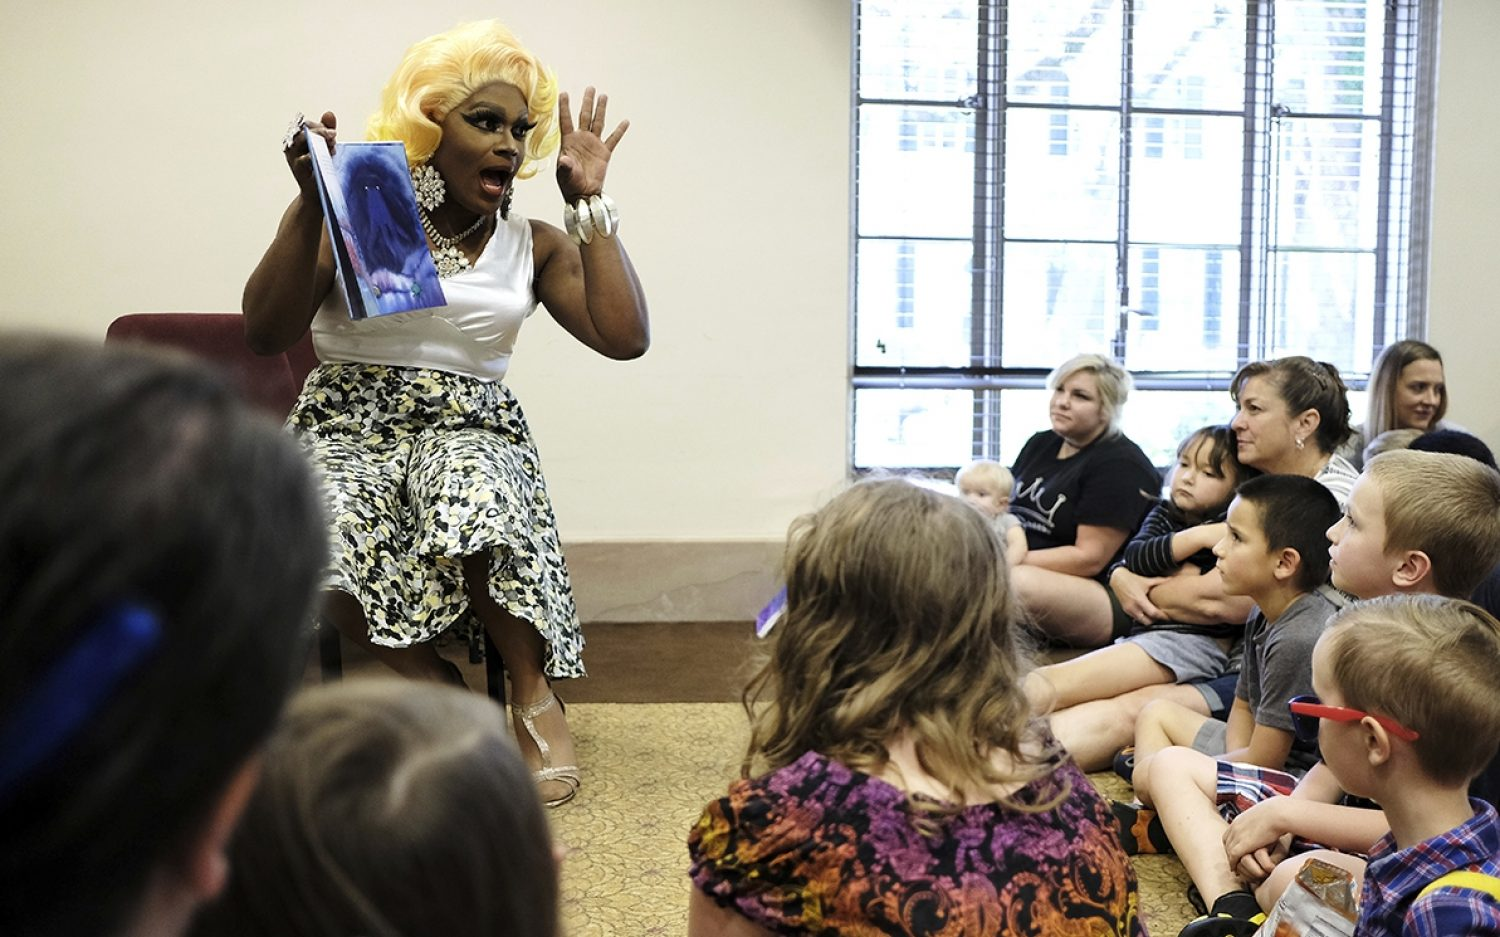 A pastor at drag queen story hour